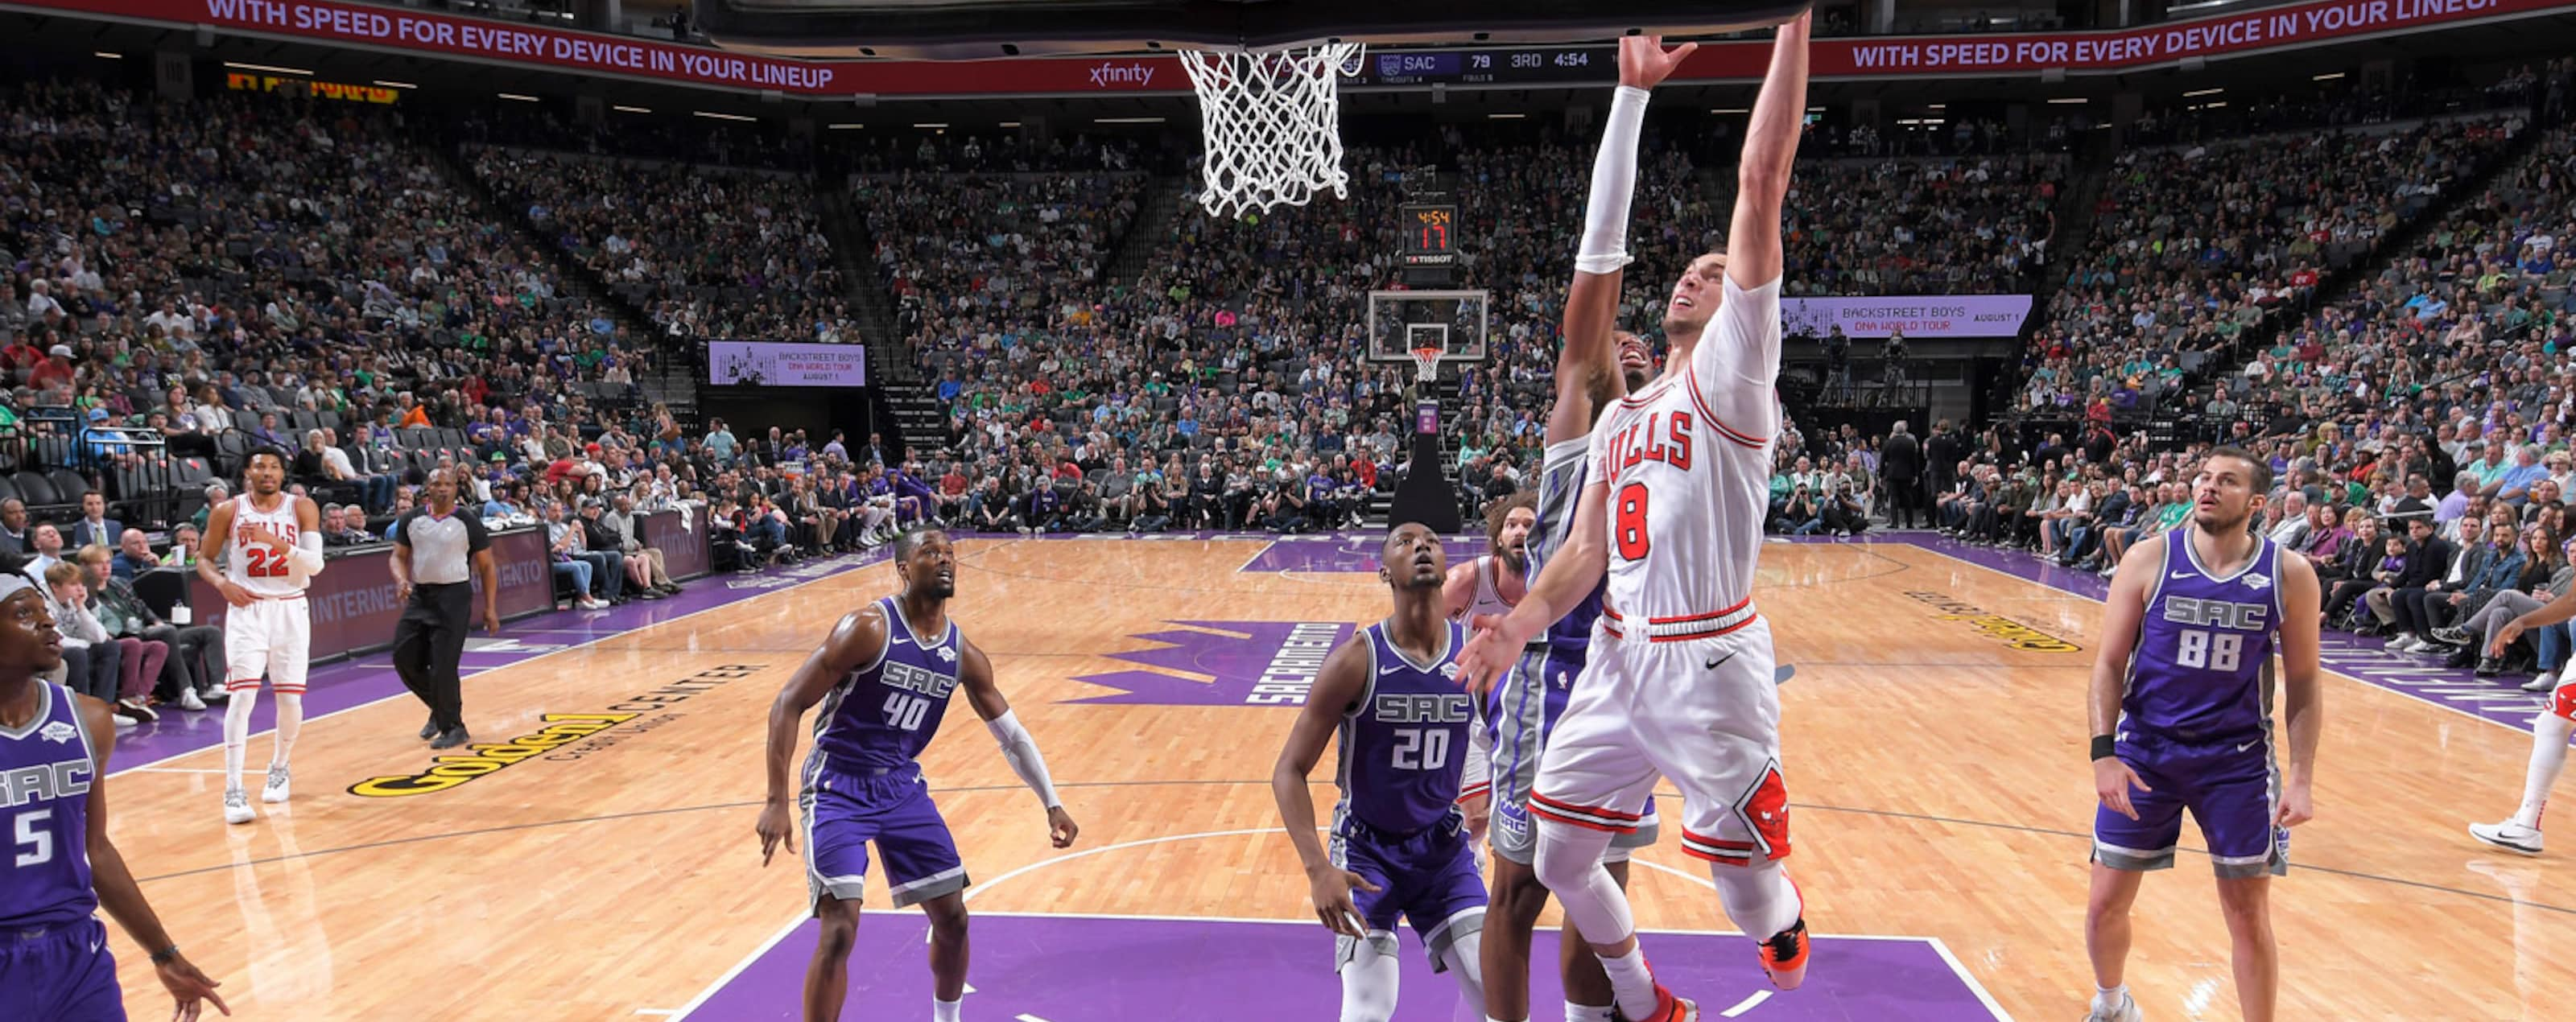 Zach Lavine #8 of the Chicago Bulls shoots a layup against the Sacramento Kings on March 17, 2019 at Golden 1 Center in Sacramento, California.